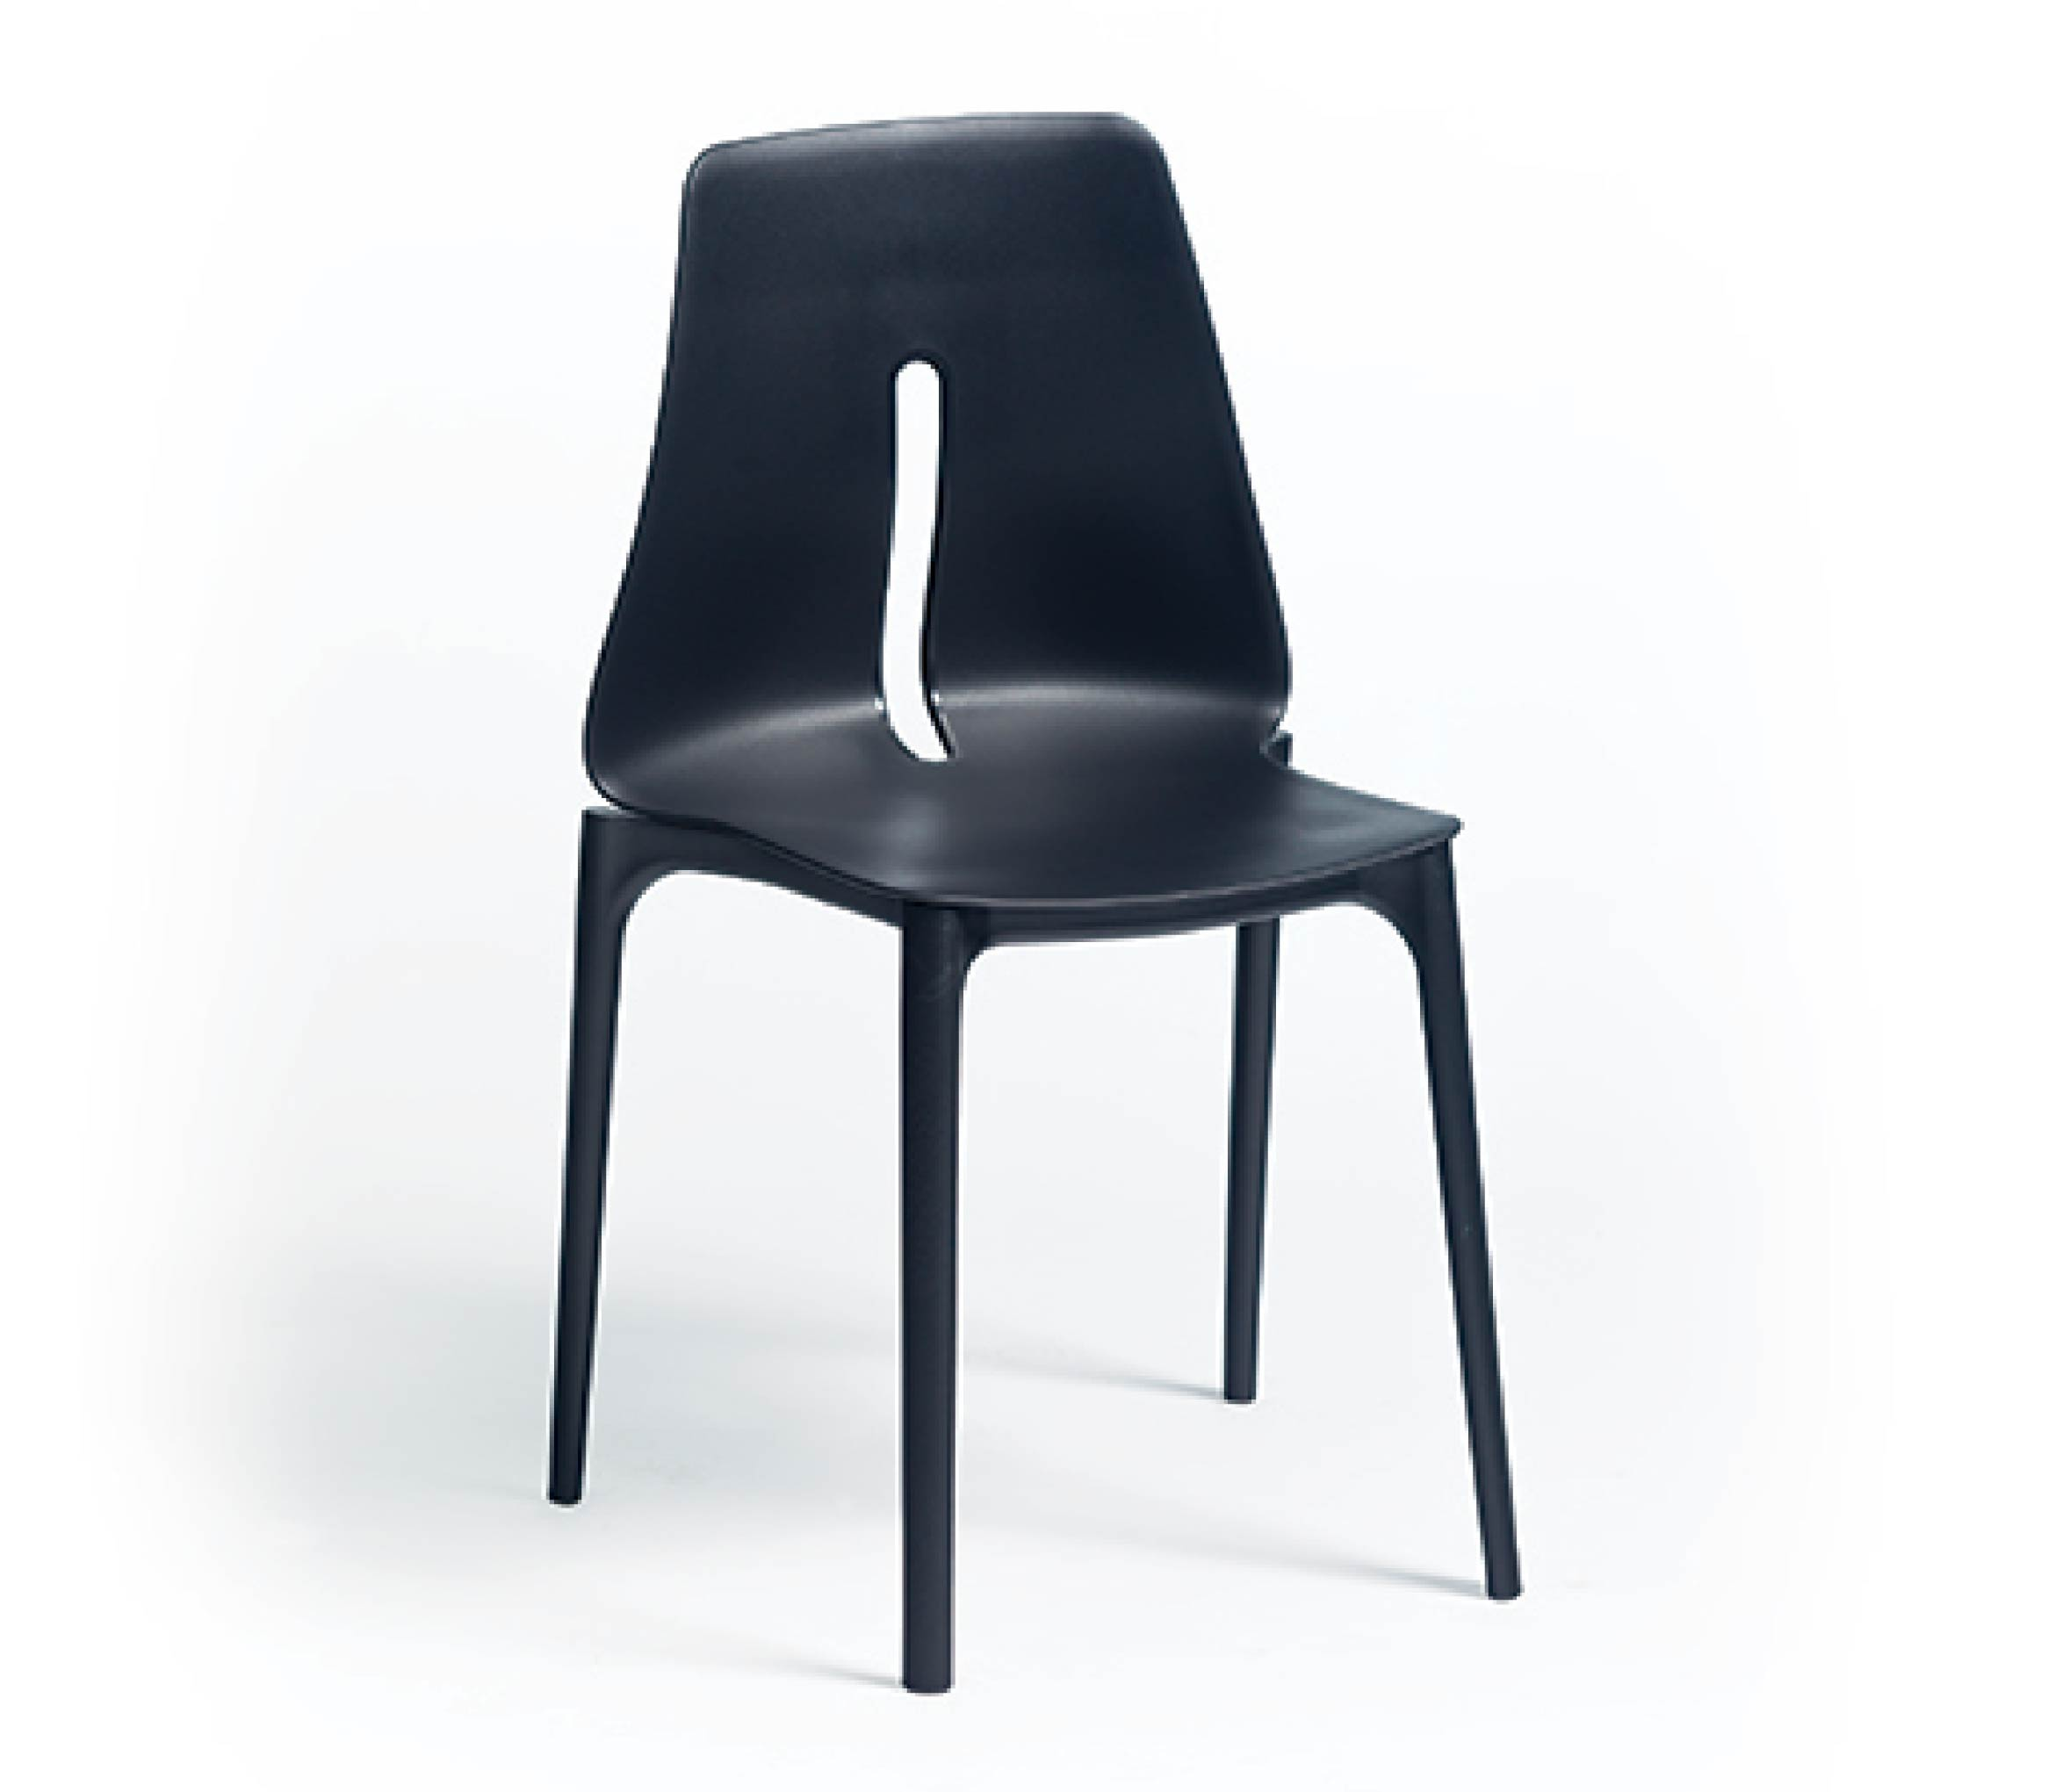 5_TENSAI_FURNITURE_OBLONG__plastic_chair_black_color_in_white_background_NG950_001